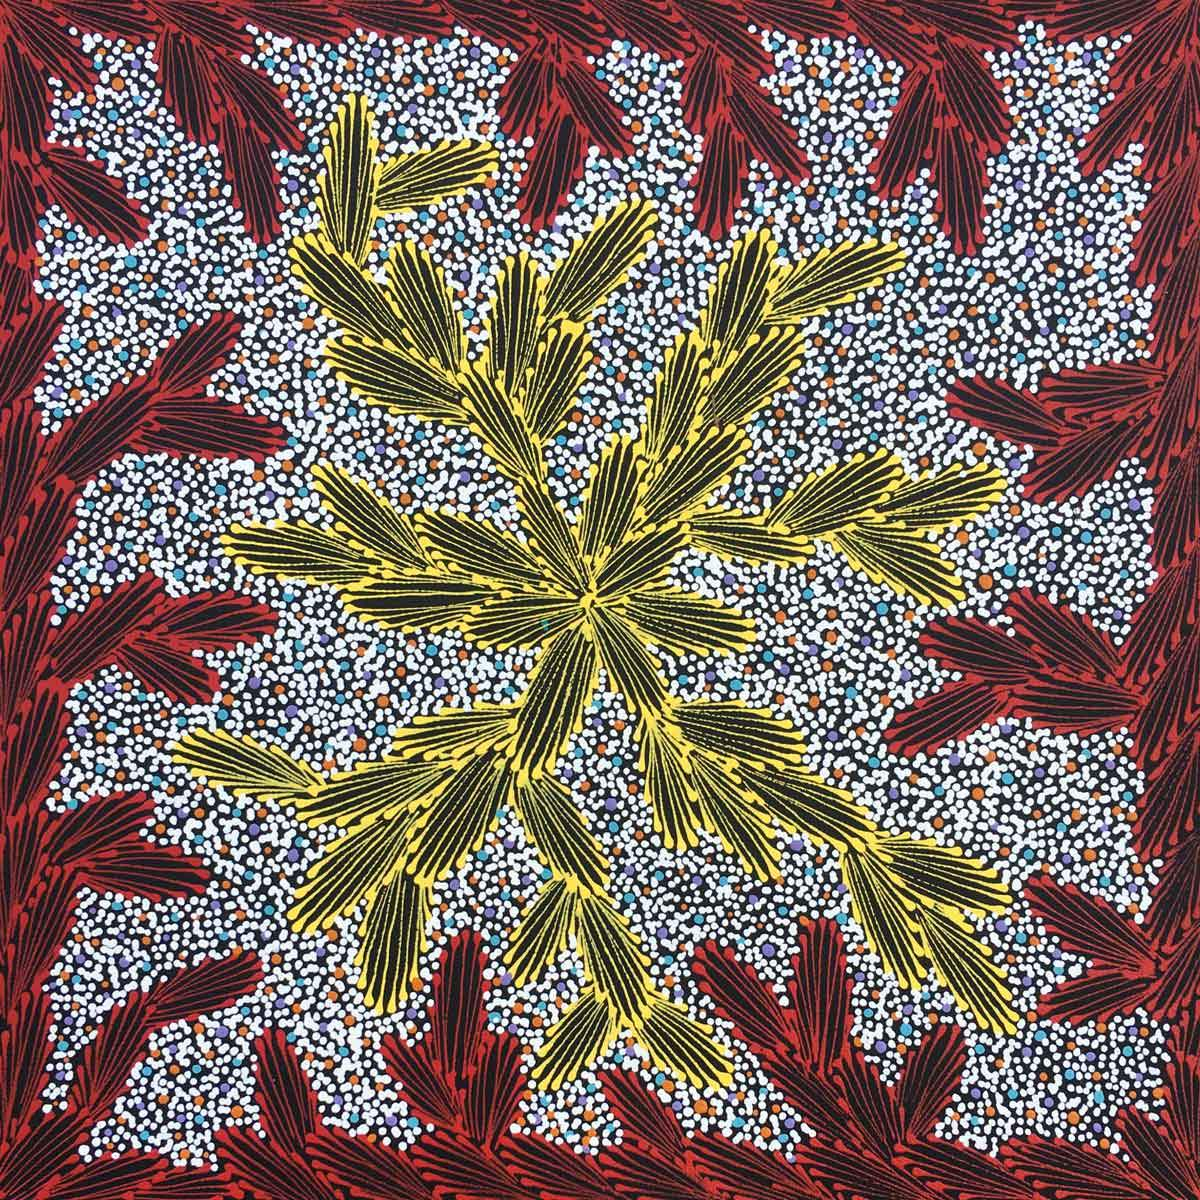 Ntyeny Ngkwarl by Loretta Jones Petyarre. Australian Aboriginal Art.